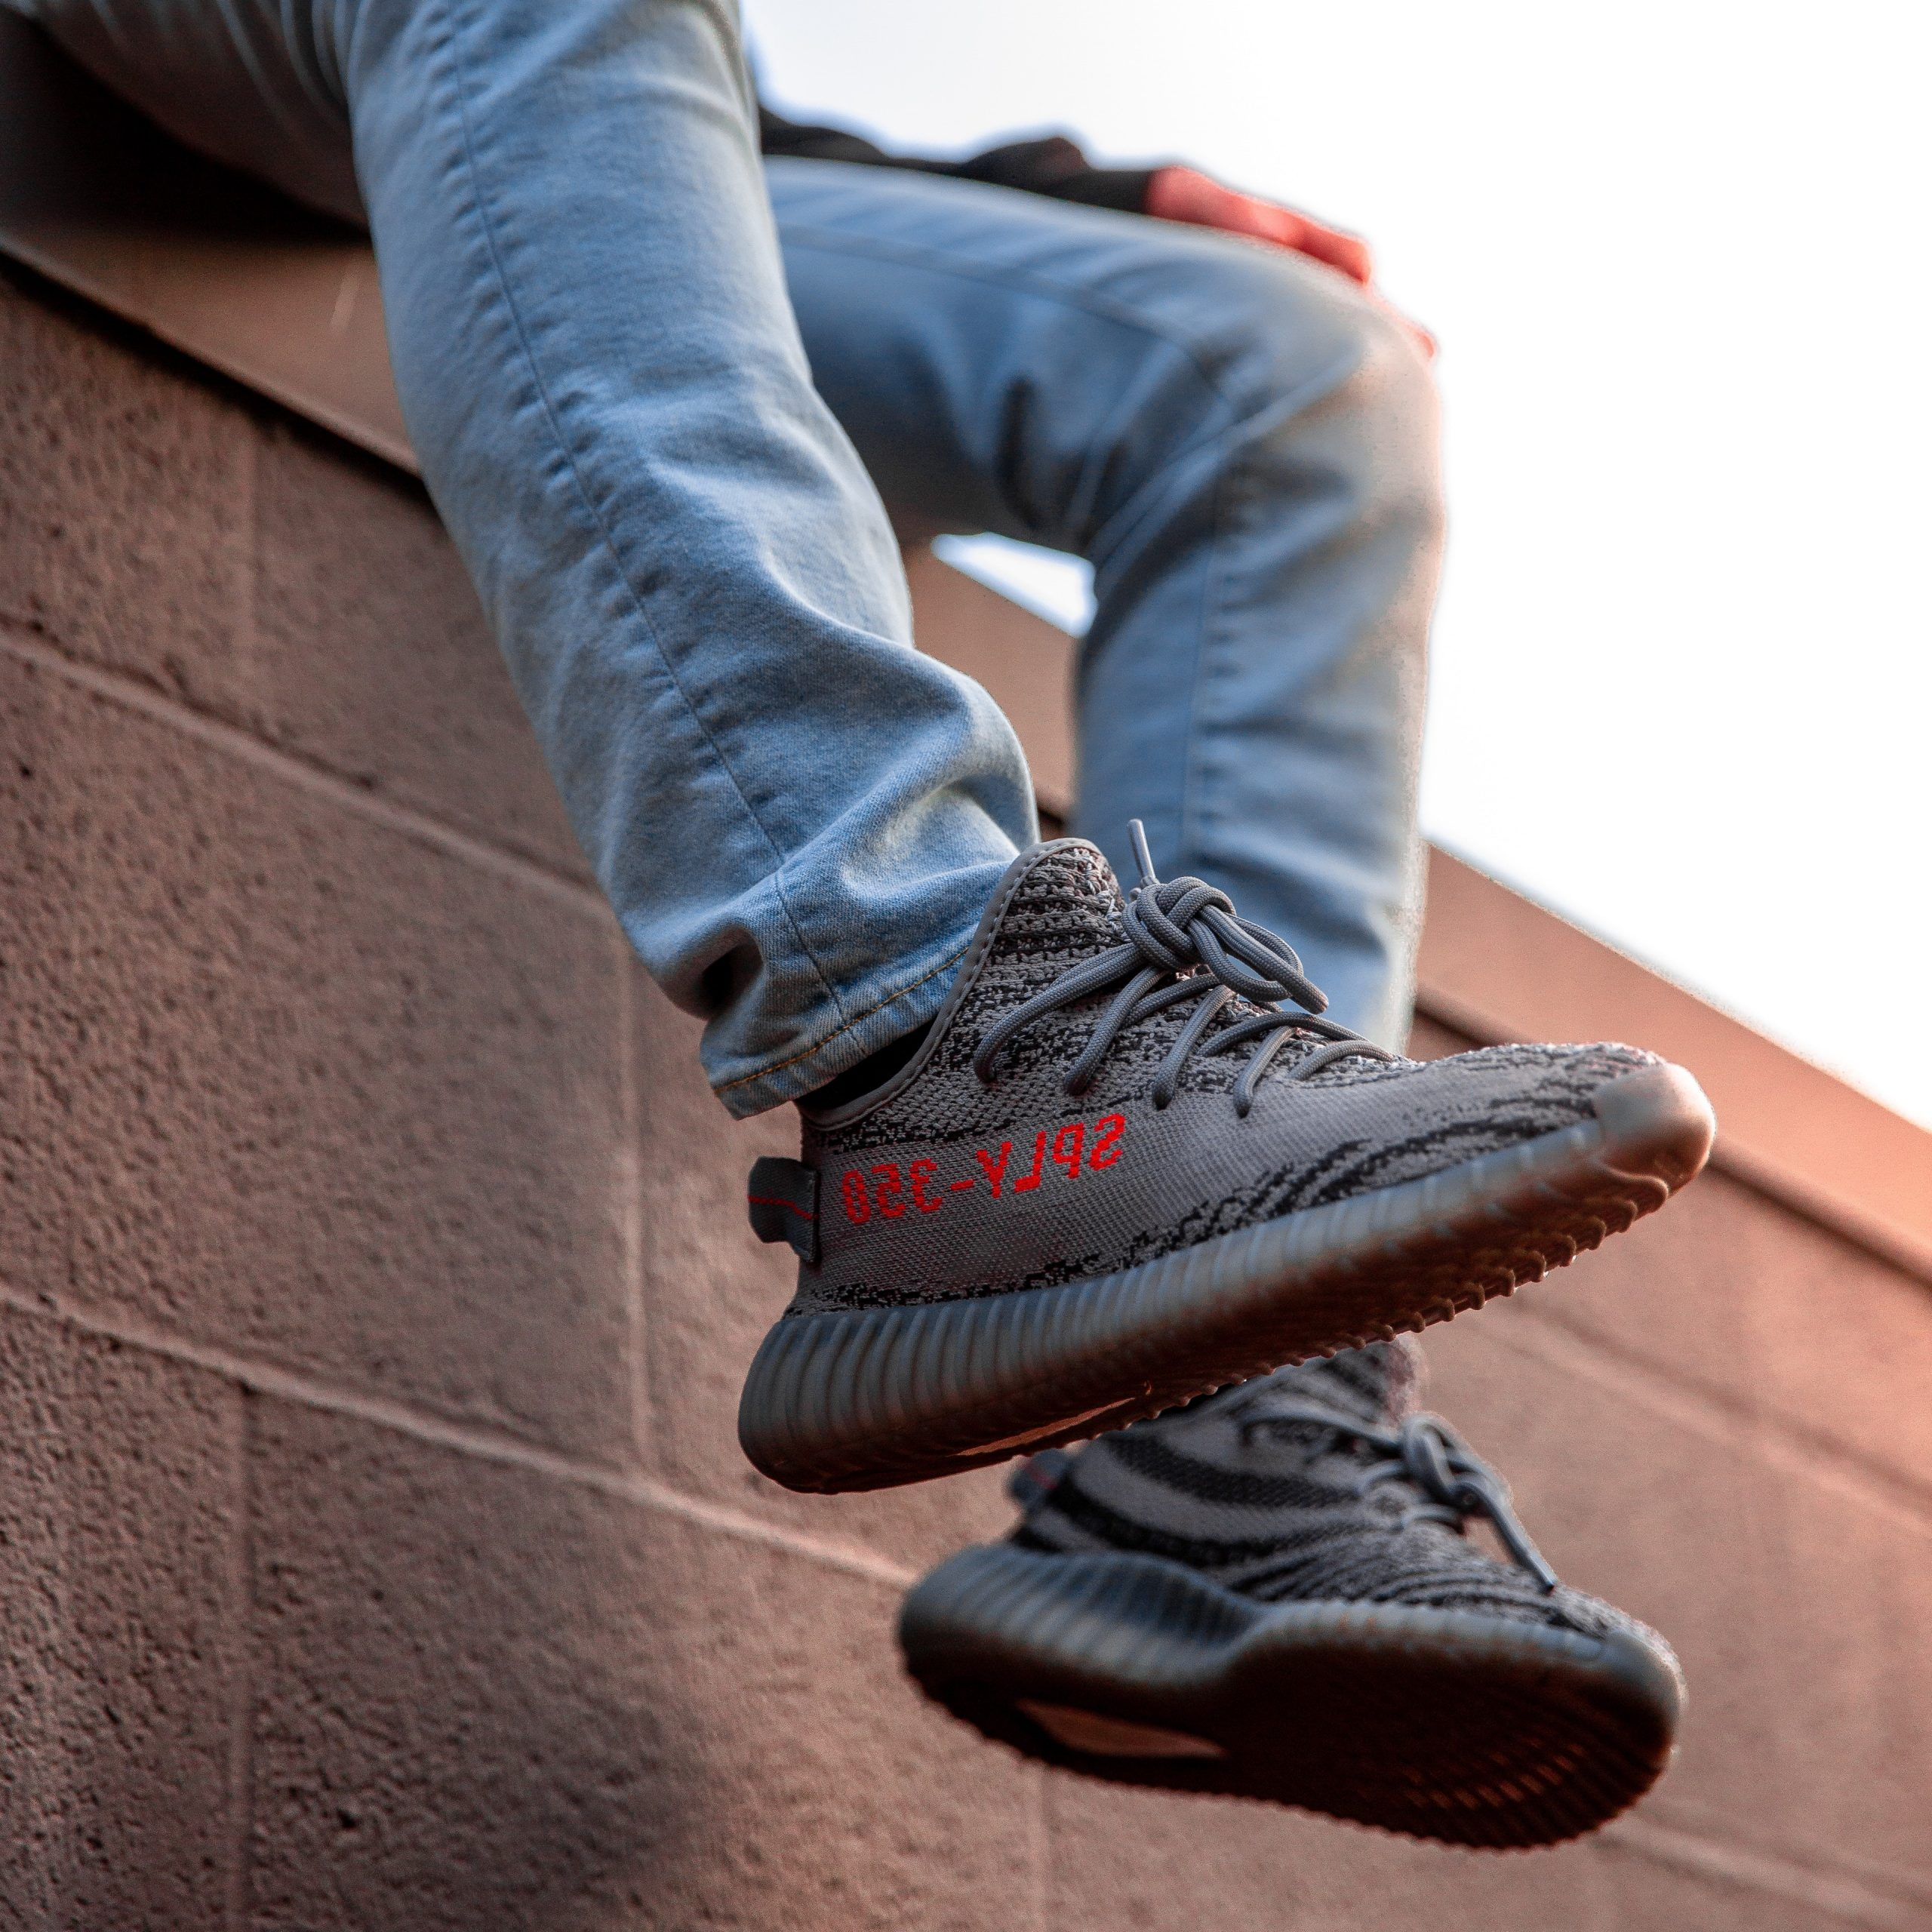 man sitting on ledge with his feet hanging in gray sneakers